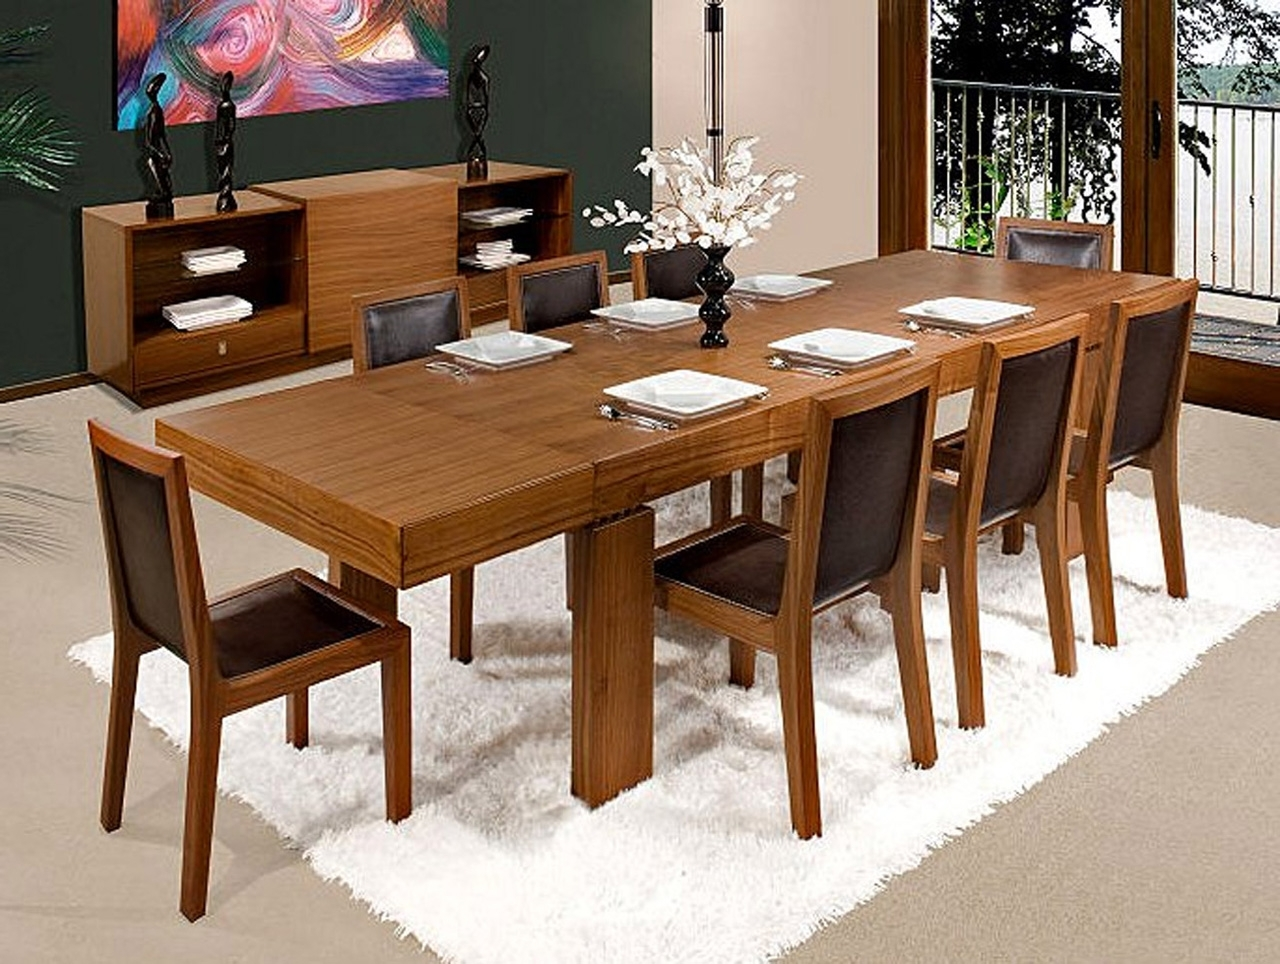 Dining Tables With 8 Seater Regarding Latest Square Dining Table For 8 Dimensions In Smashing 8 Seat Table Large (Gallery 24 of 25)